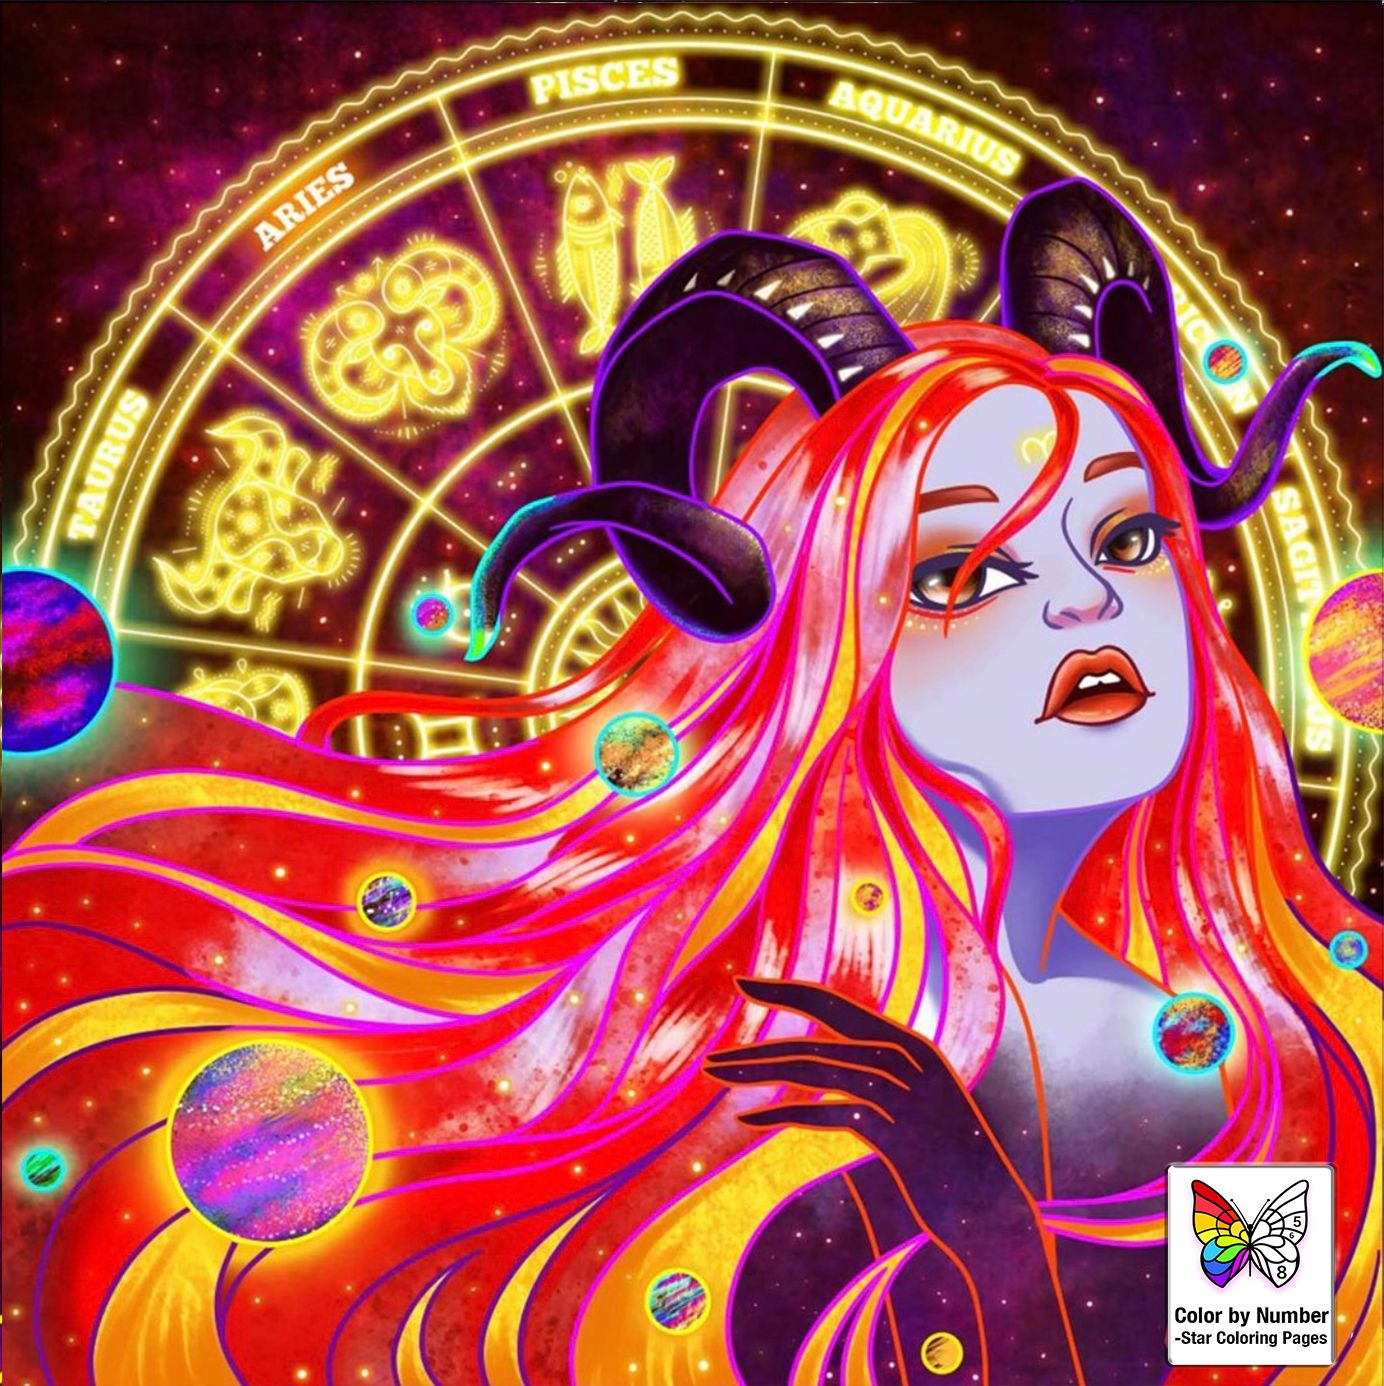 300 Coloring Pages For Grown Ups Woman Free And Printable Zodiac Art Star Coloring Pages Astrology Art